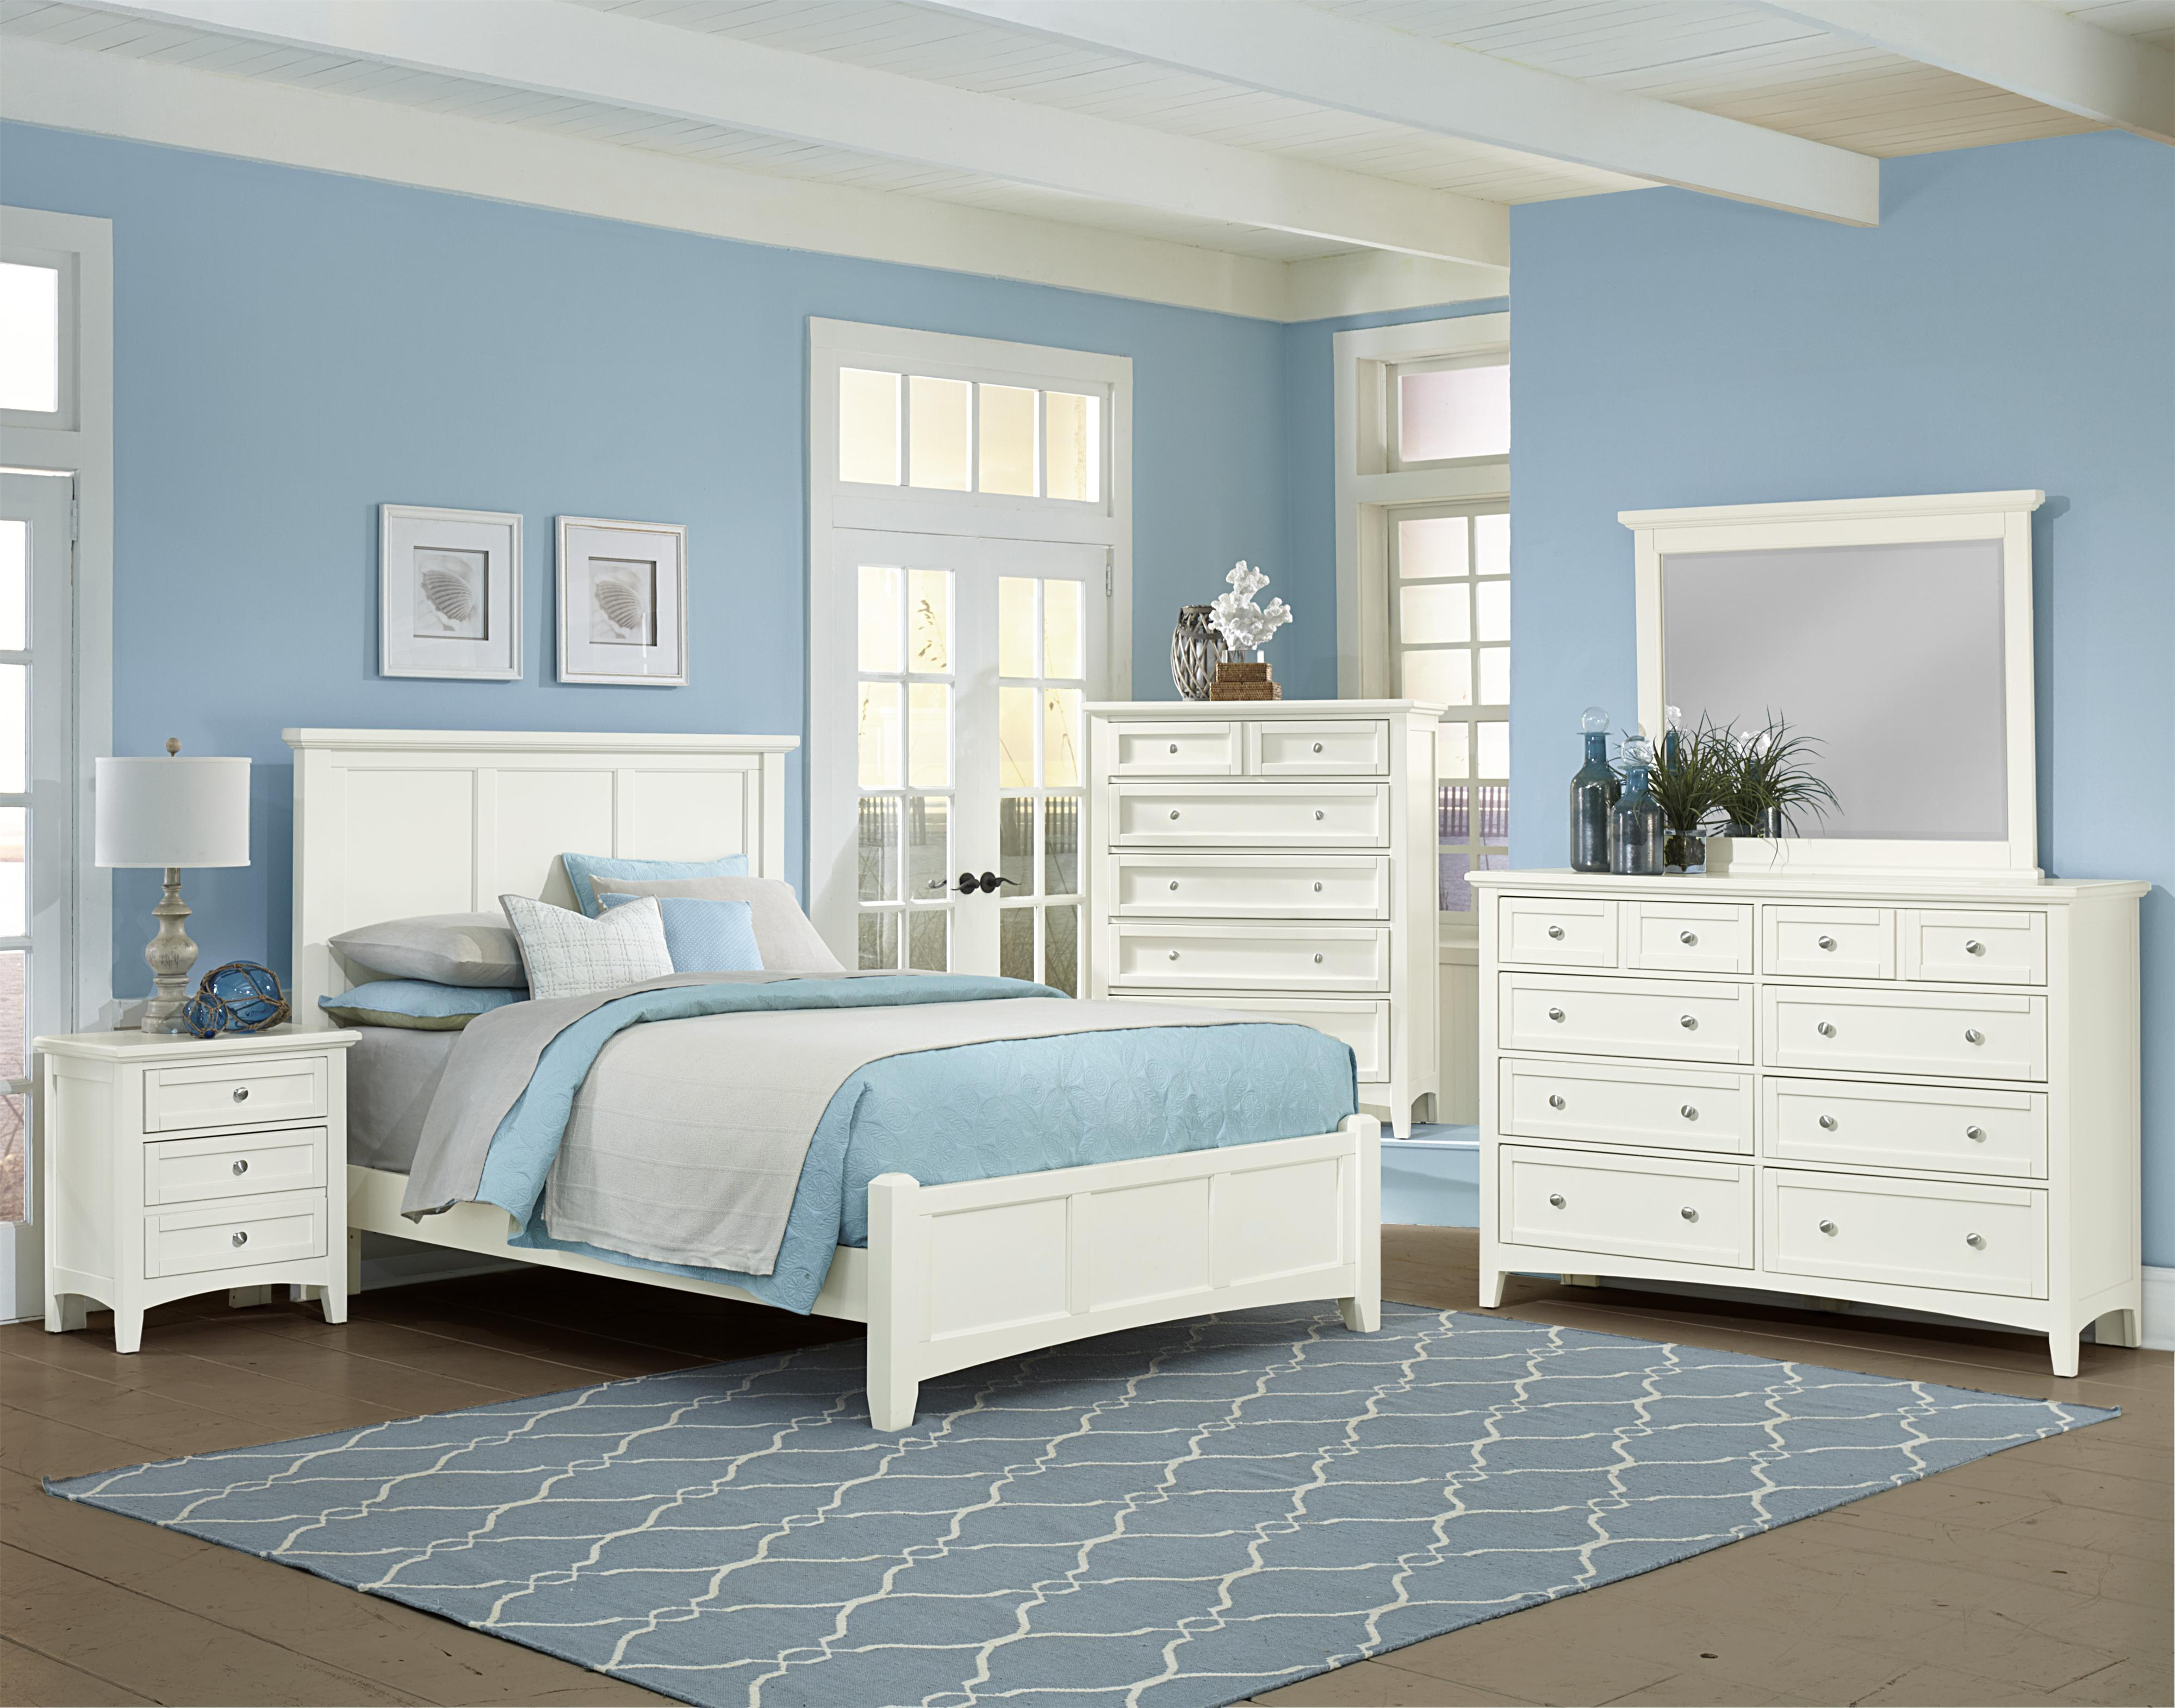 Bonanza California King Bedroom Group by Vaughan Bassett at Jacksonville Furniture Mart